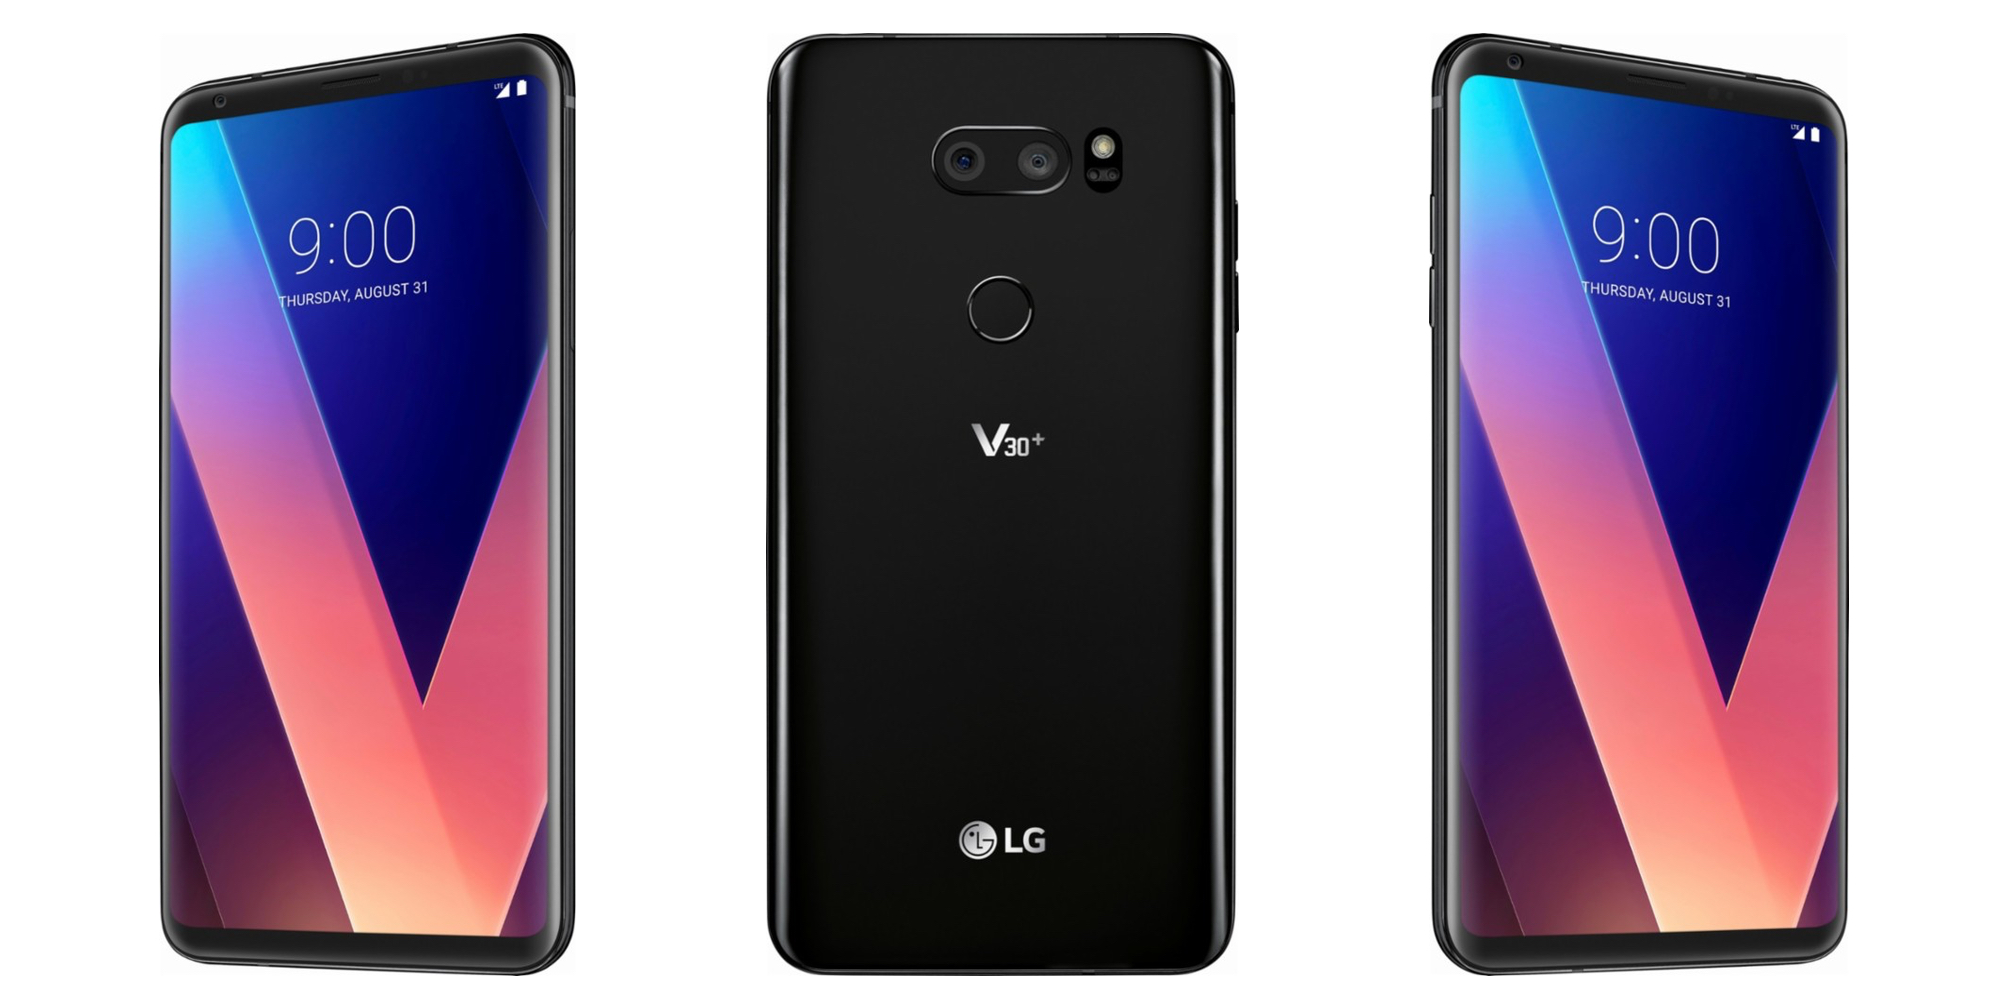 Today only, the LG V30+ 128GB Smartphone can be yours for $400 shipped (Reg. $680)